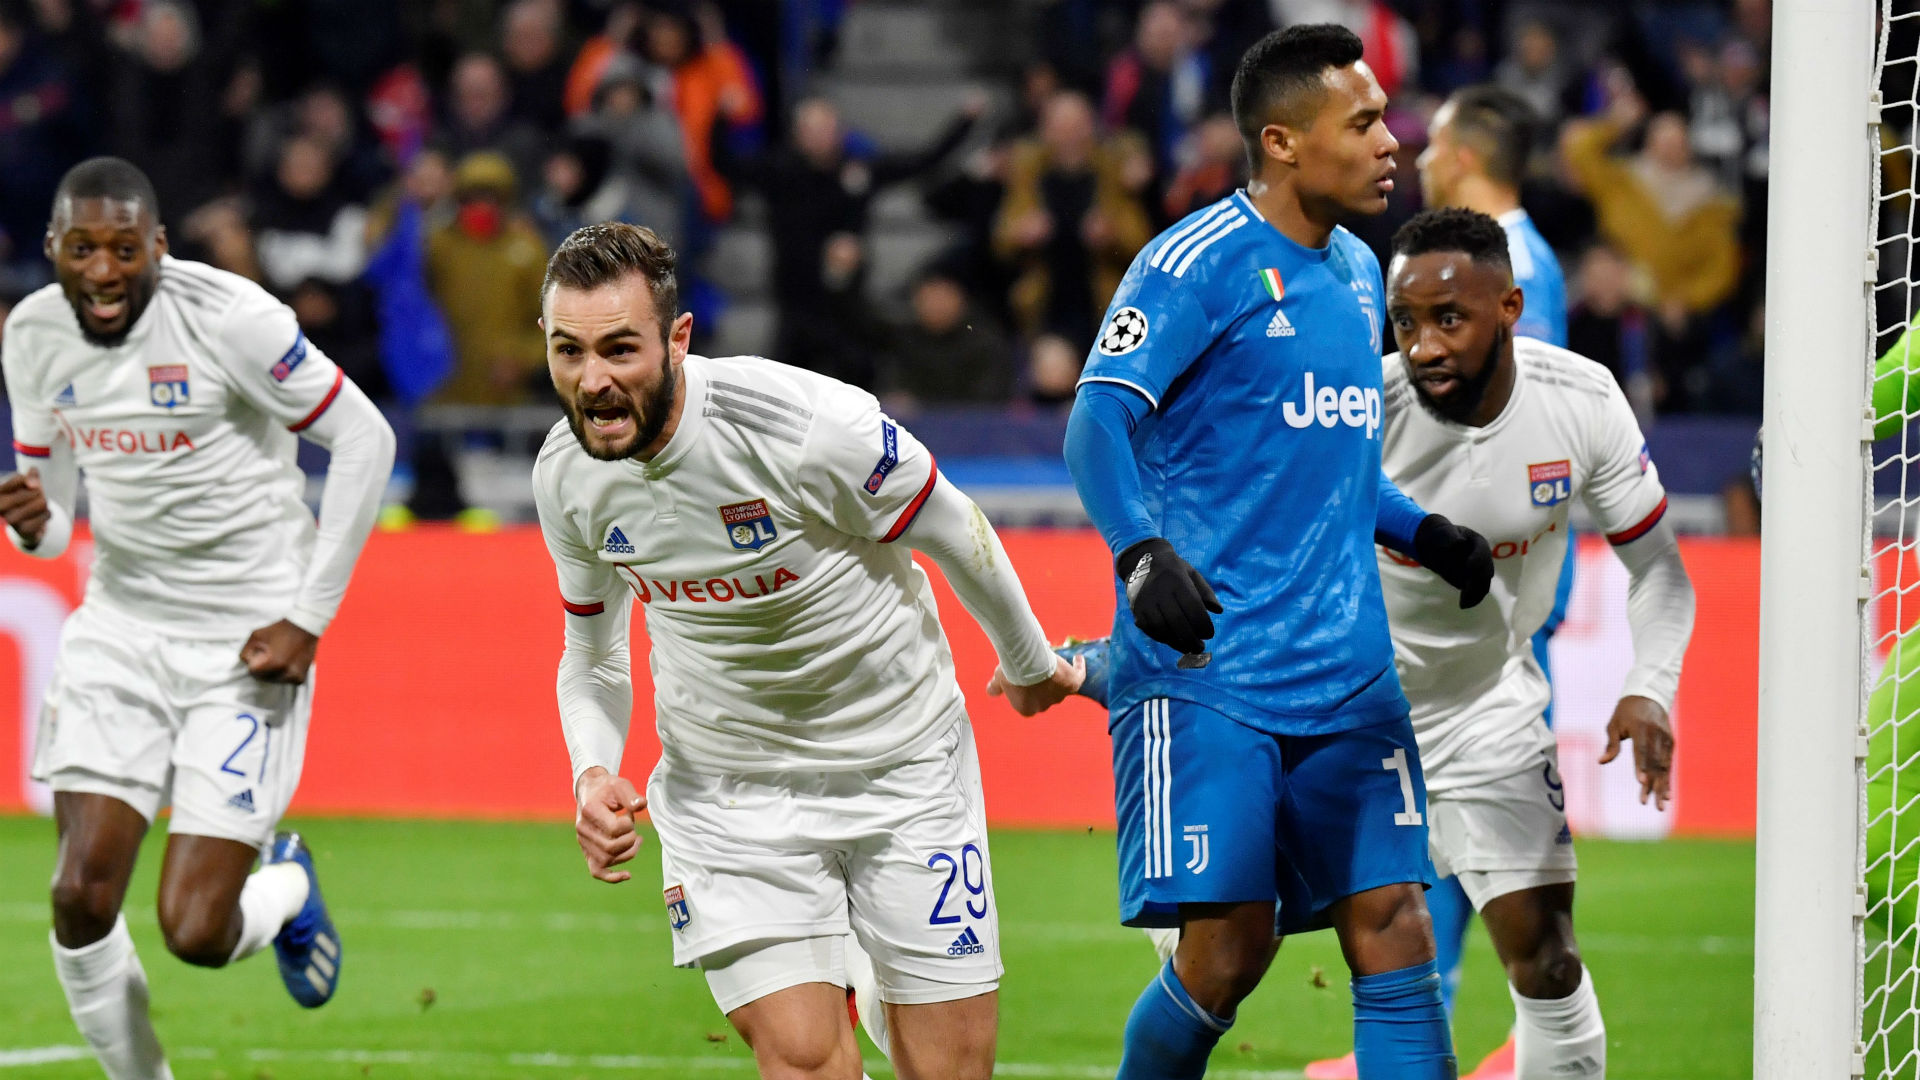 Lyon Deny Date Set For Champions League Clash With Juventus